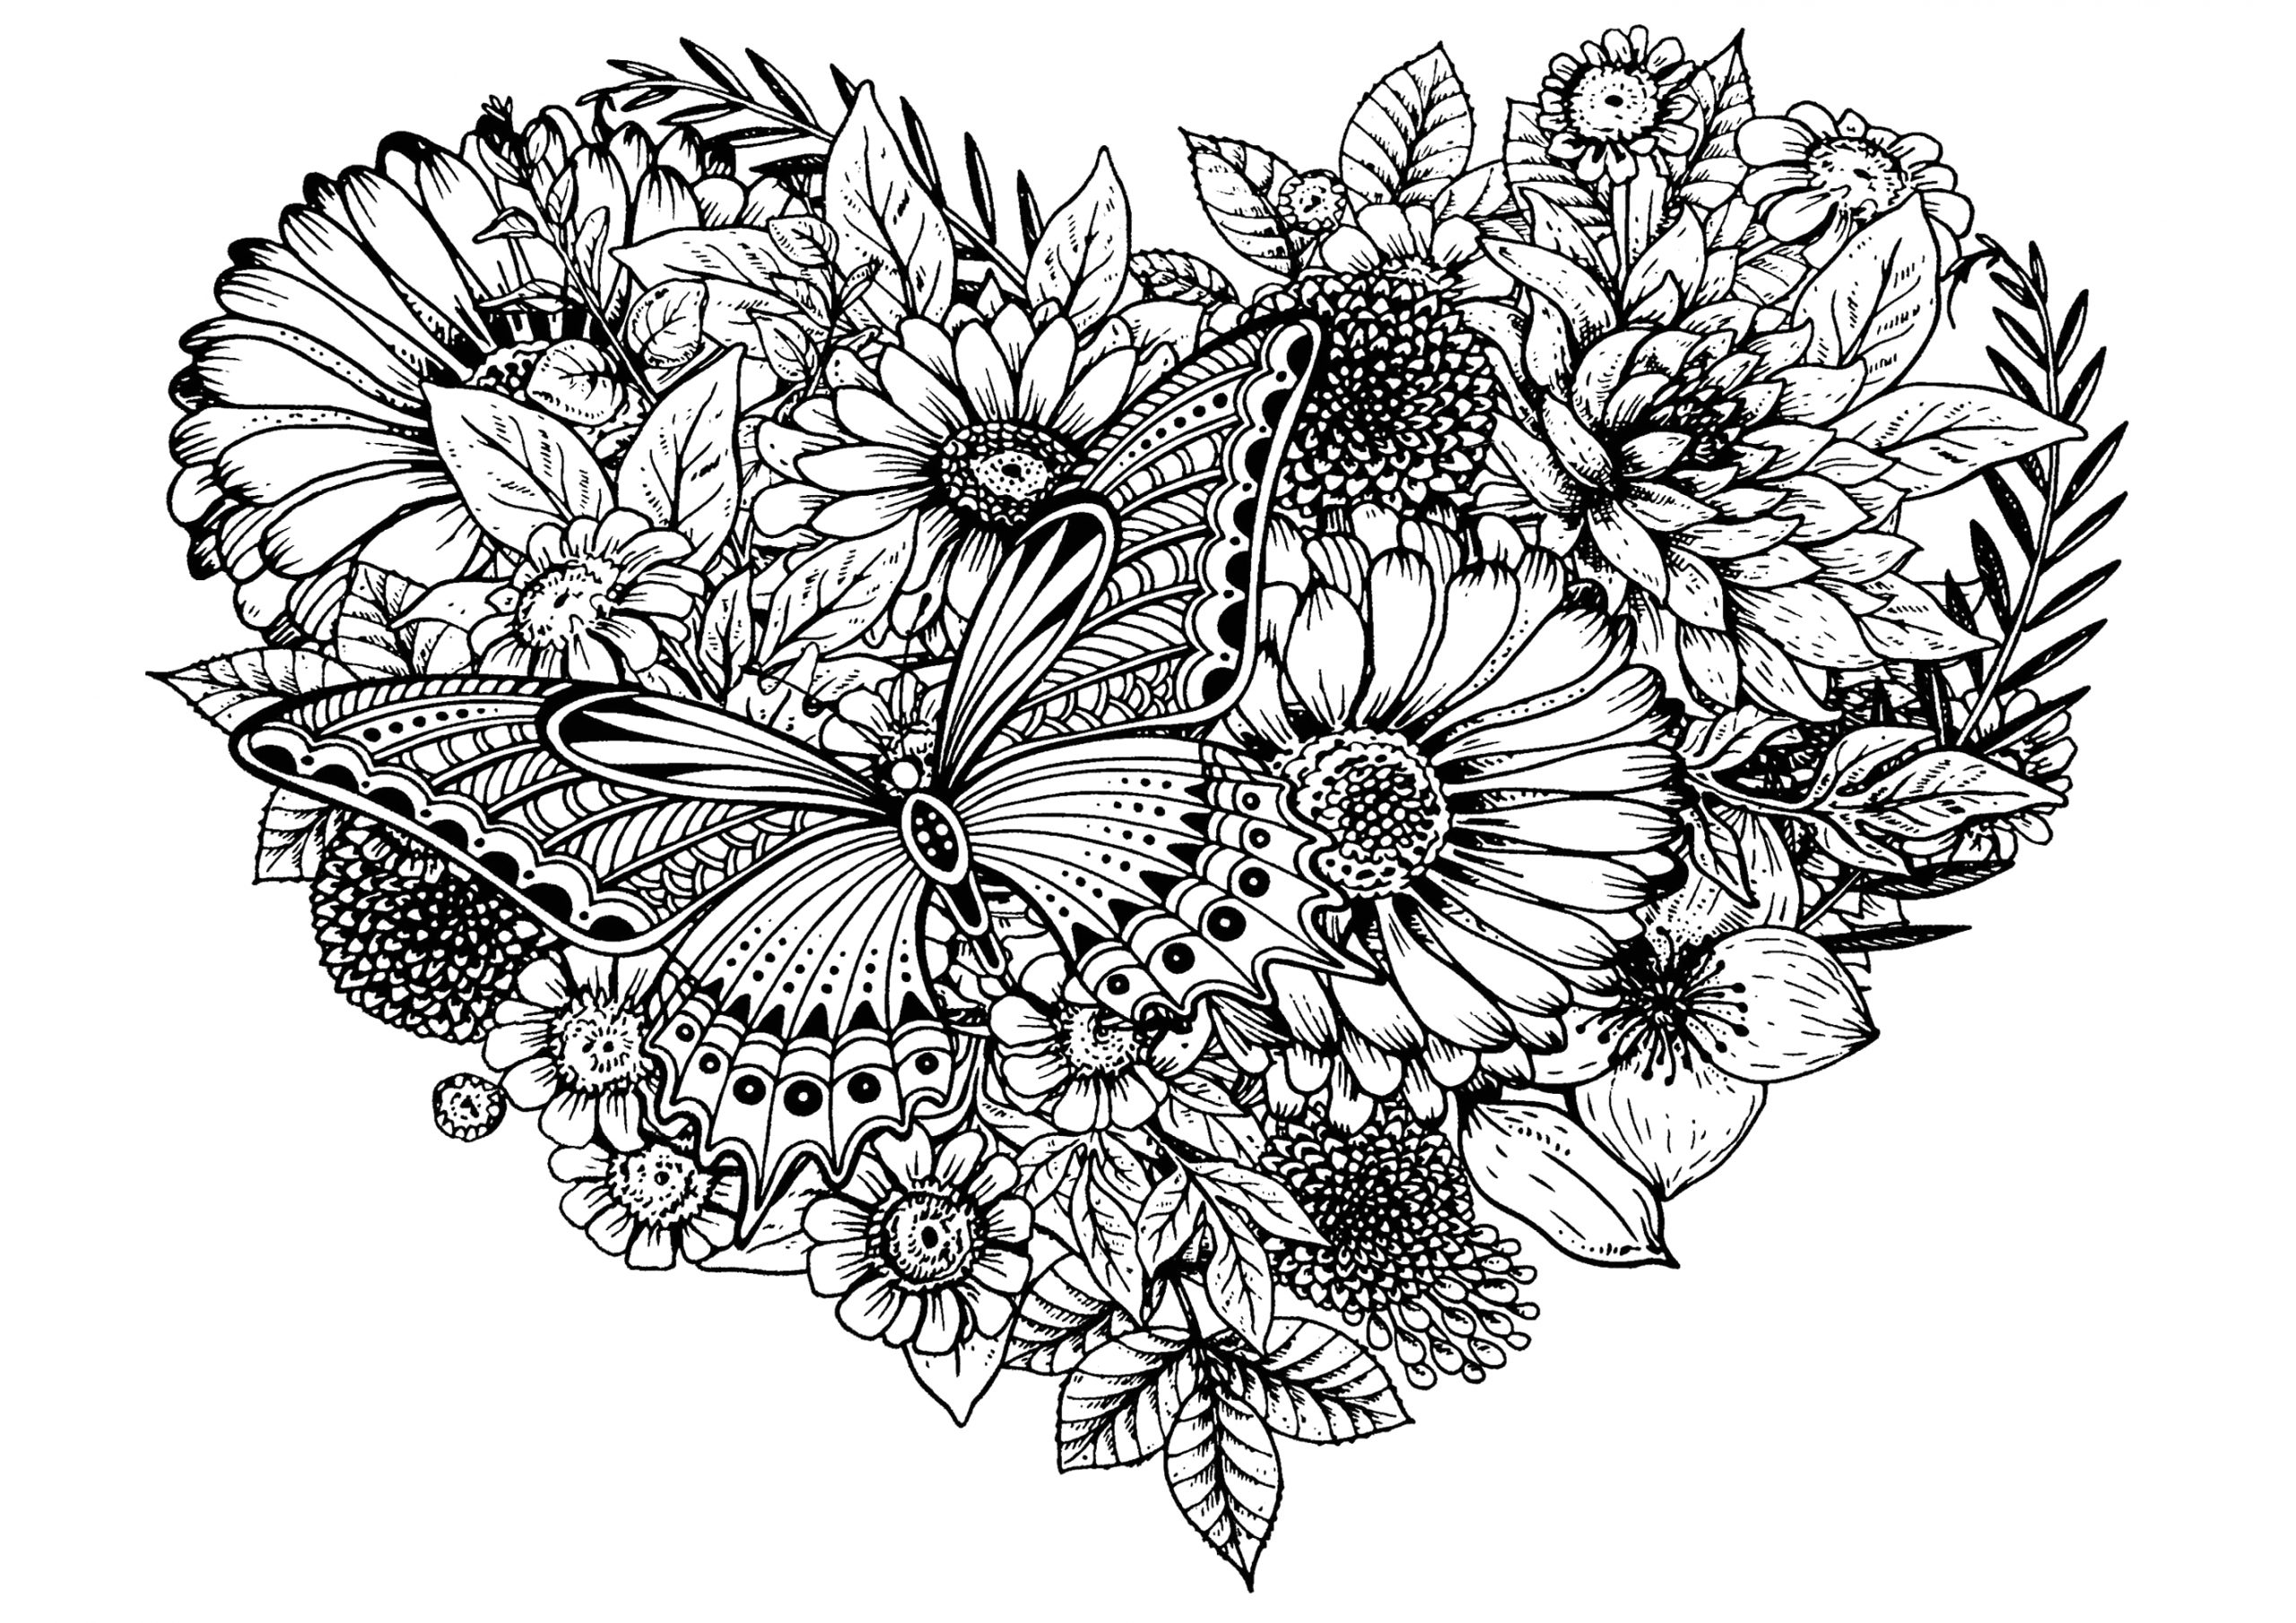 image=fleurs et ve ation coloring flowers and butterfly in a heart 1